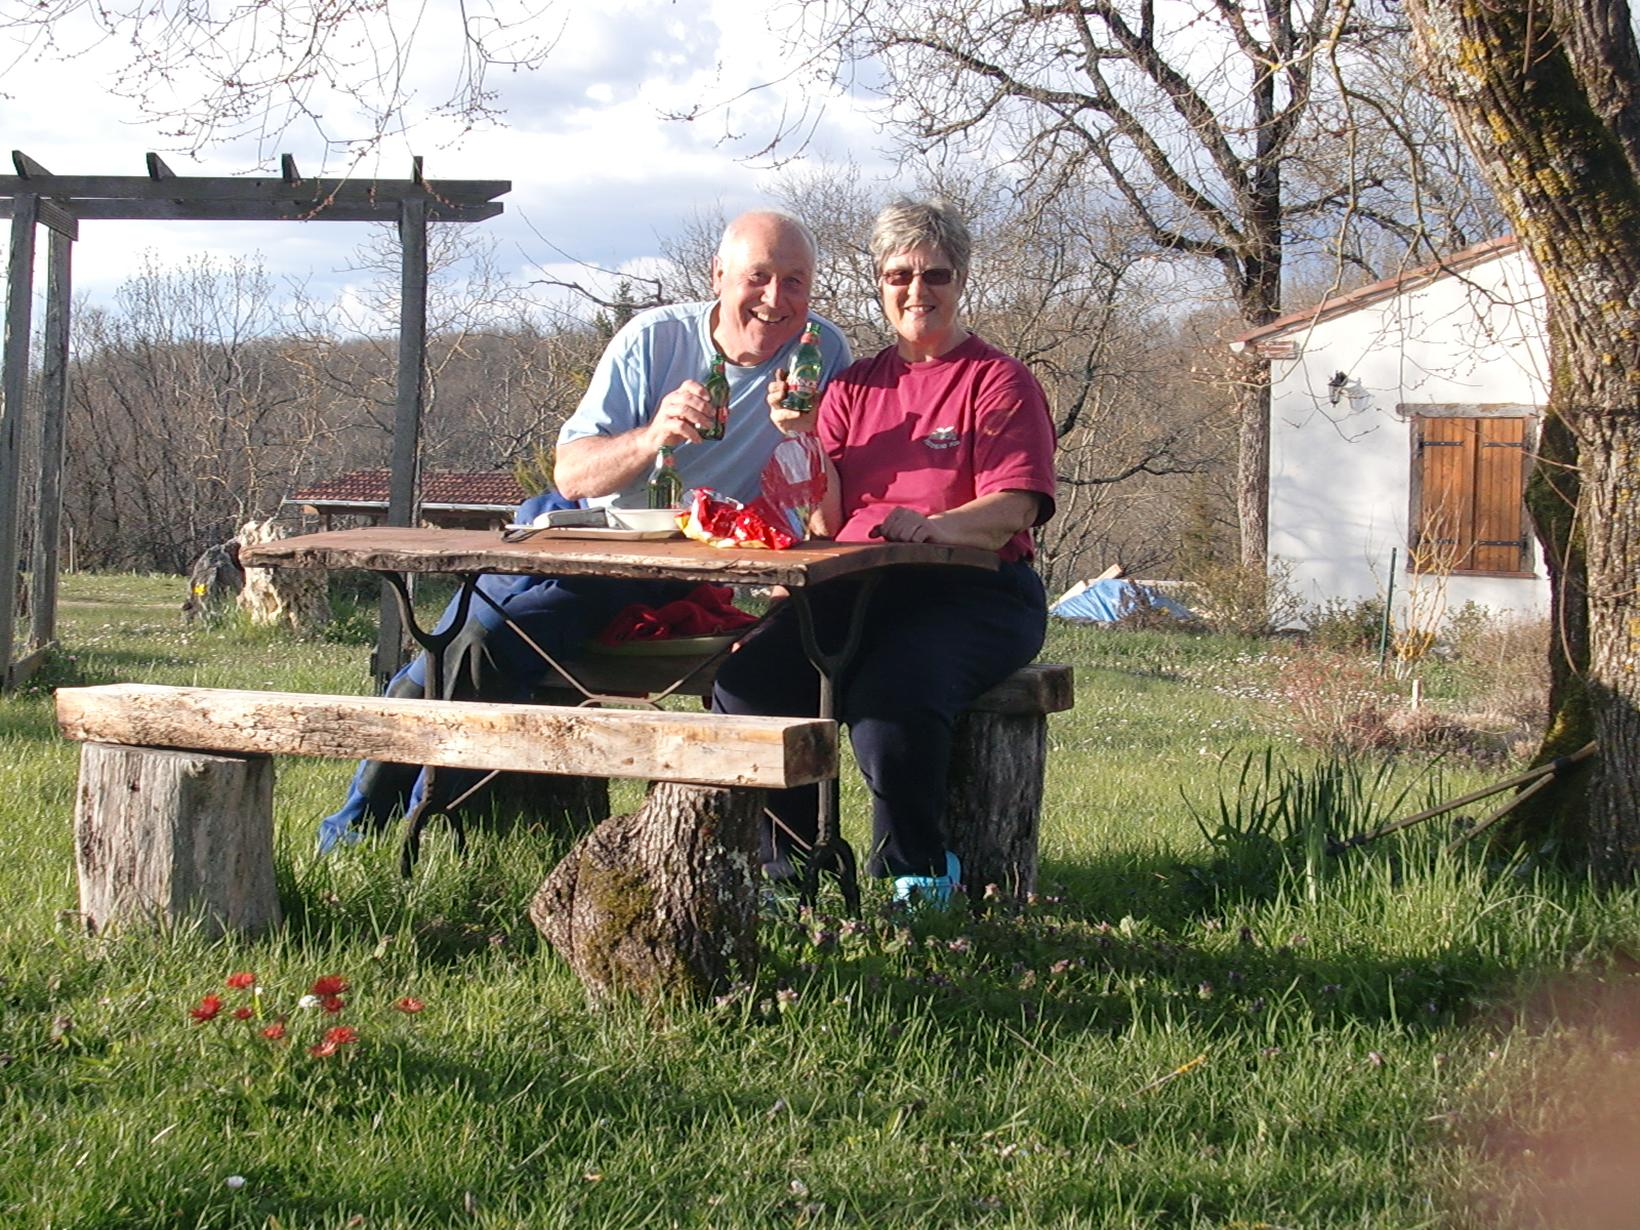 Susan & Terry from Montaigu-de-Quercy, France